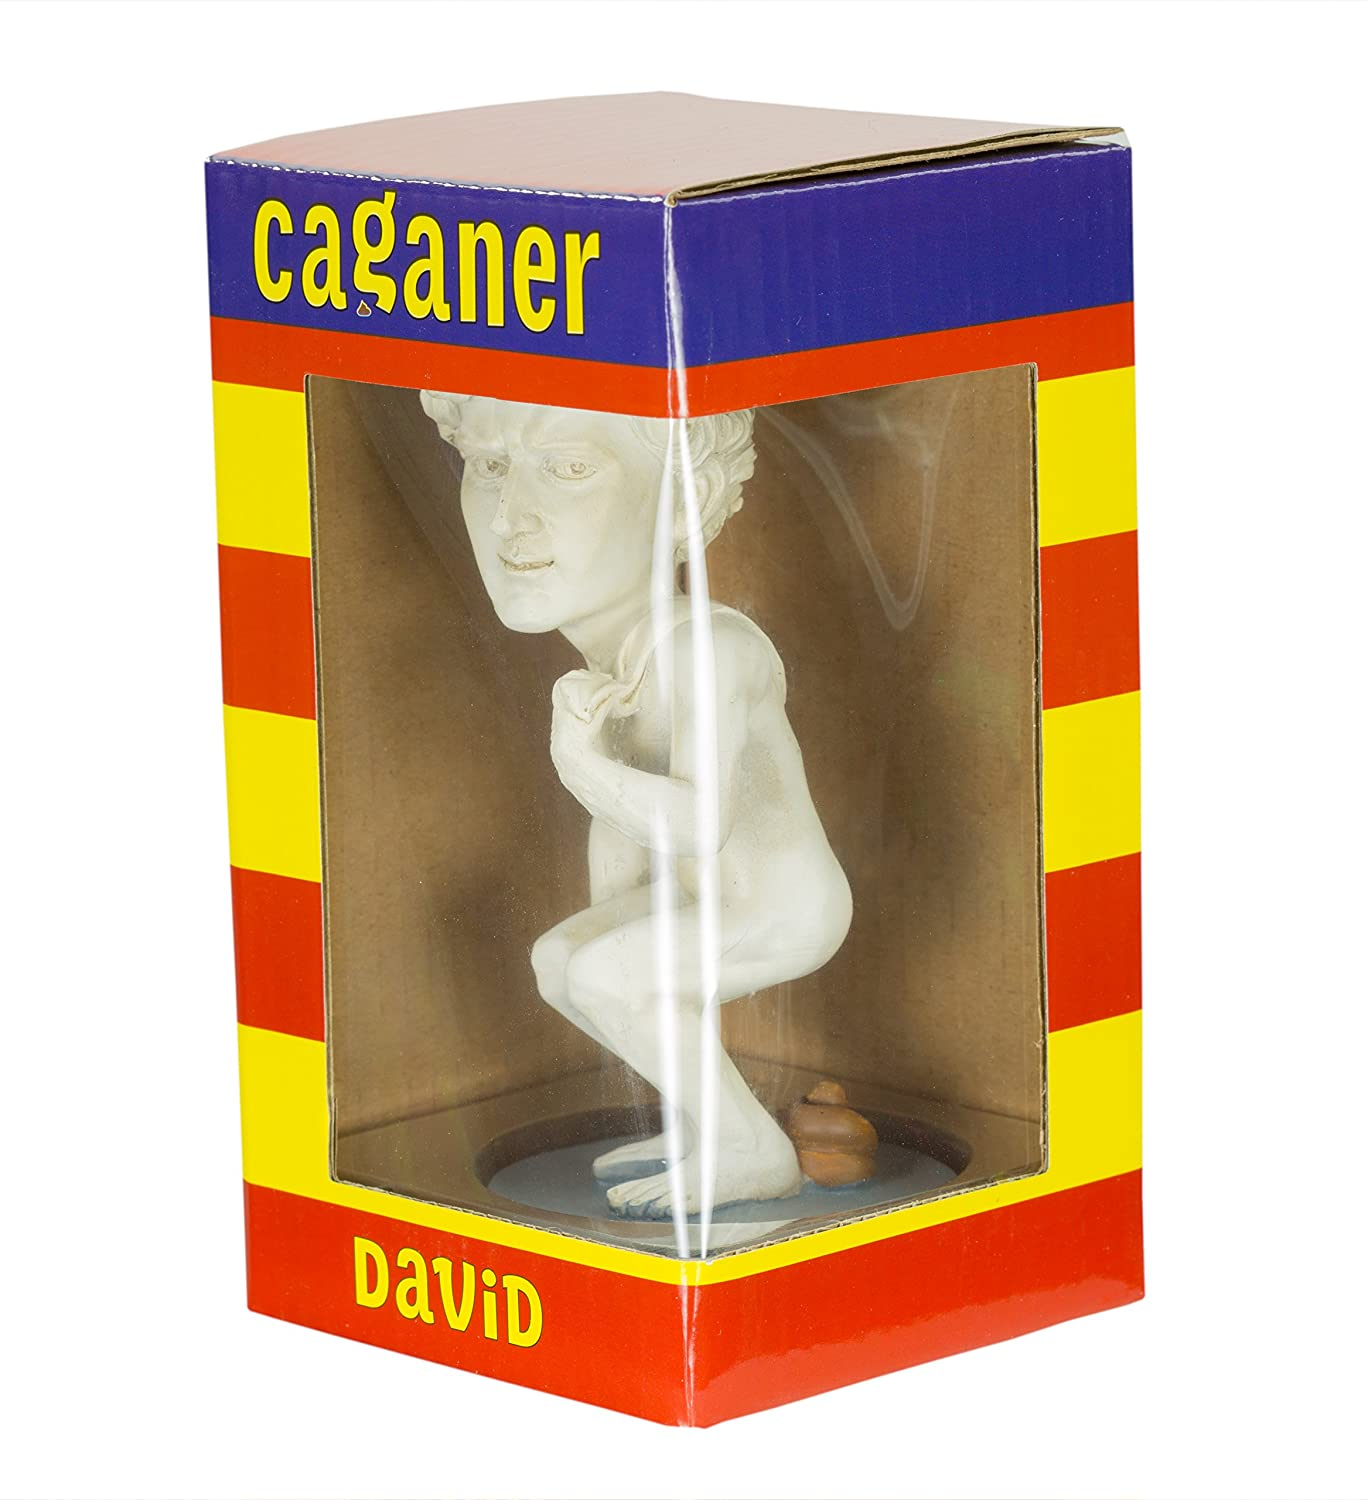 David Caganer by Caganer Shop Great White Elephant Gift Modern Interpretation of Catalan Nativity Scene Poo Figurine/—Pooping Statue/—Funny Gift Hilarious Holiday Tradition